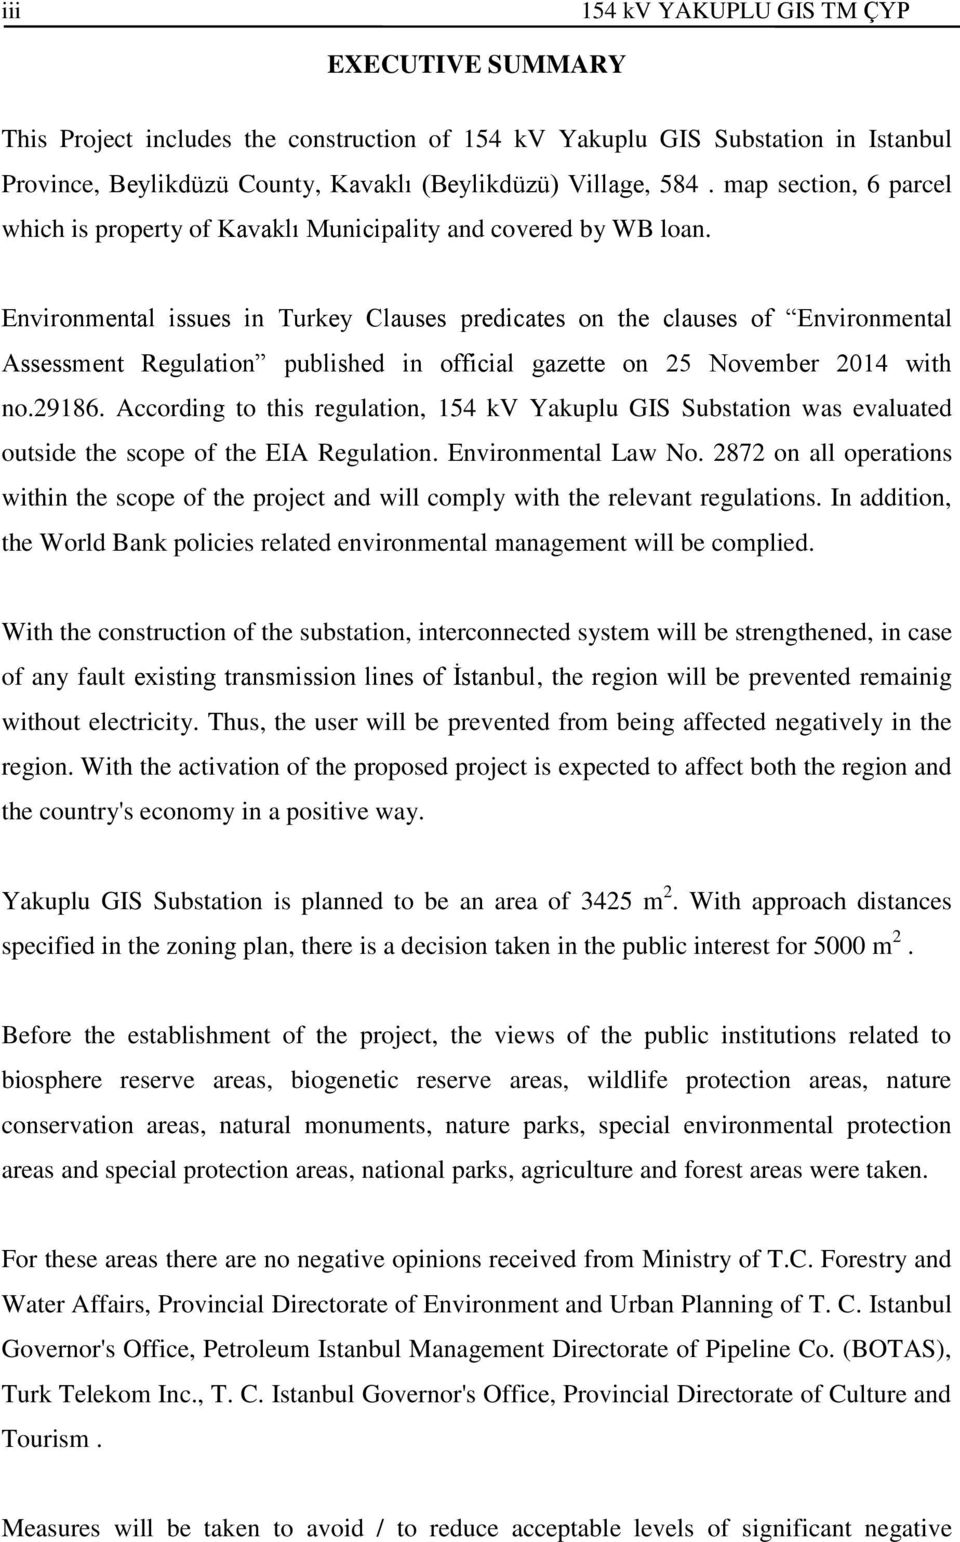 Environmental issues in Turkey Clauses predicates on the clauses of Environmental Assessment Regulation published in official gazette on 25 November 2014 with no.29186.